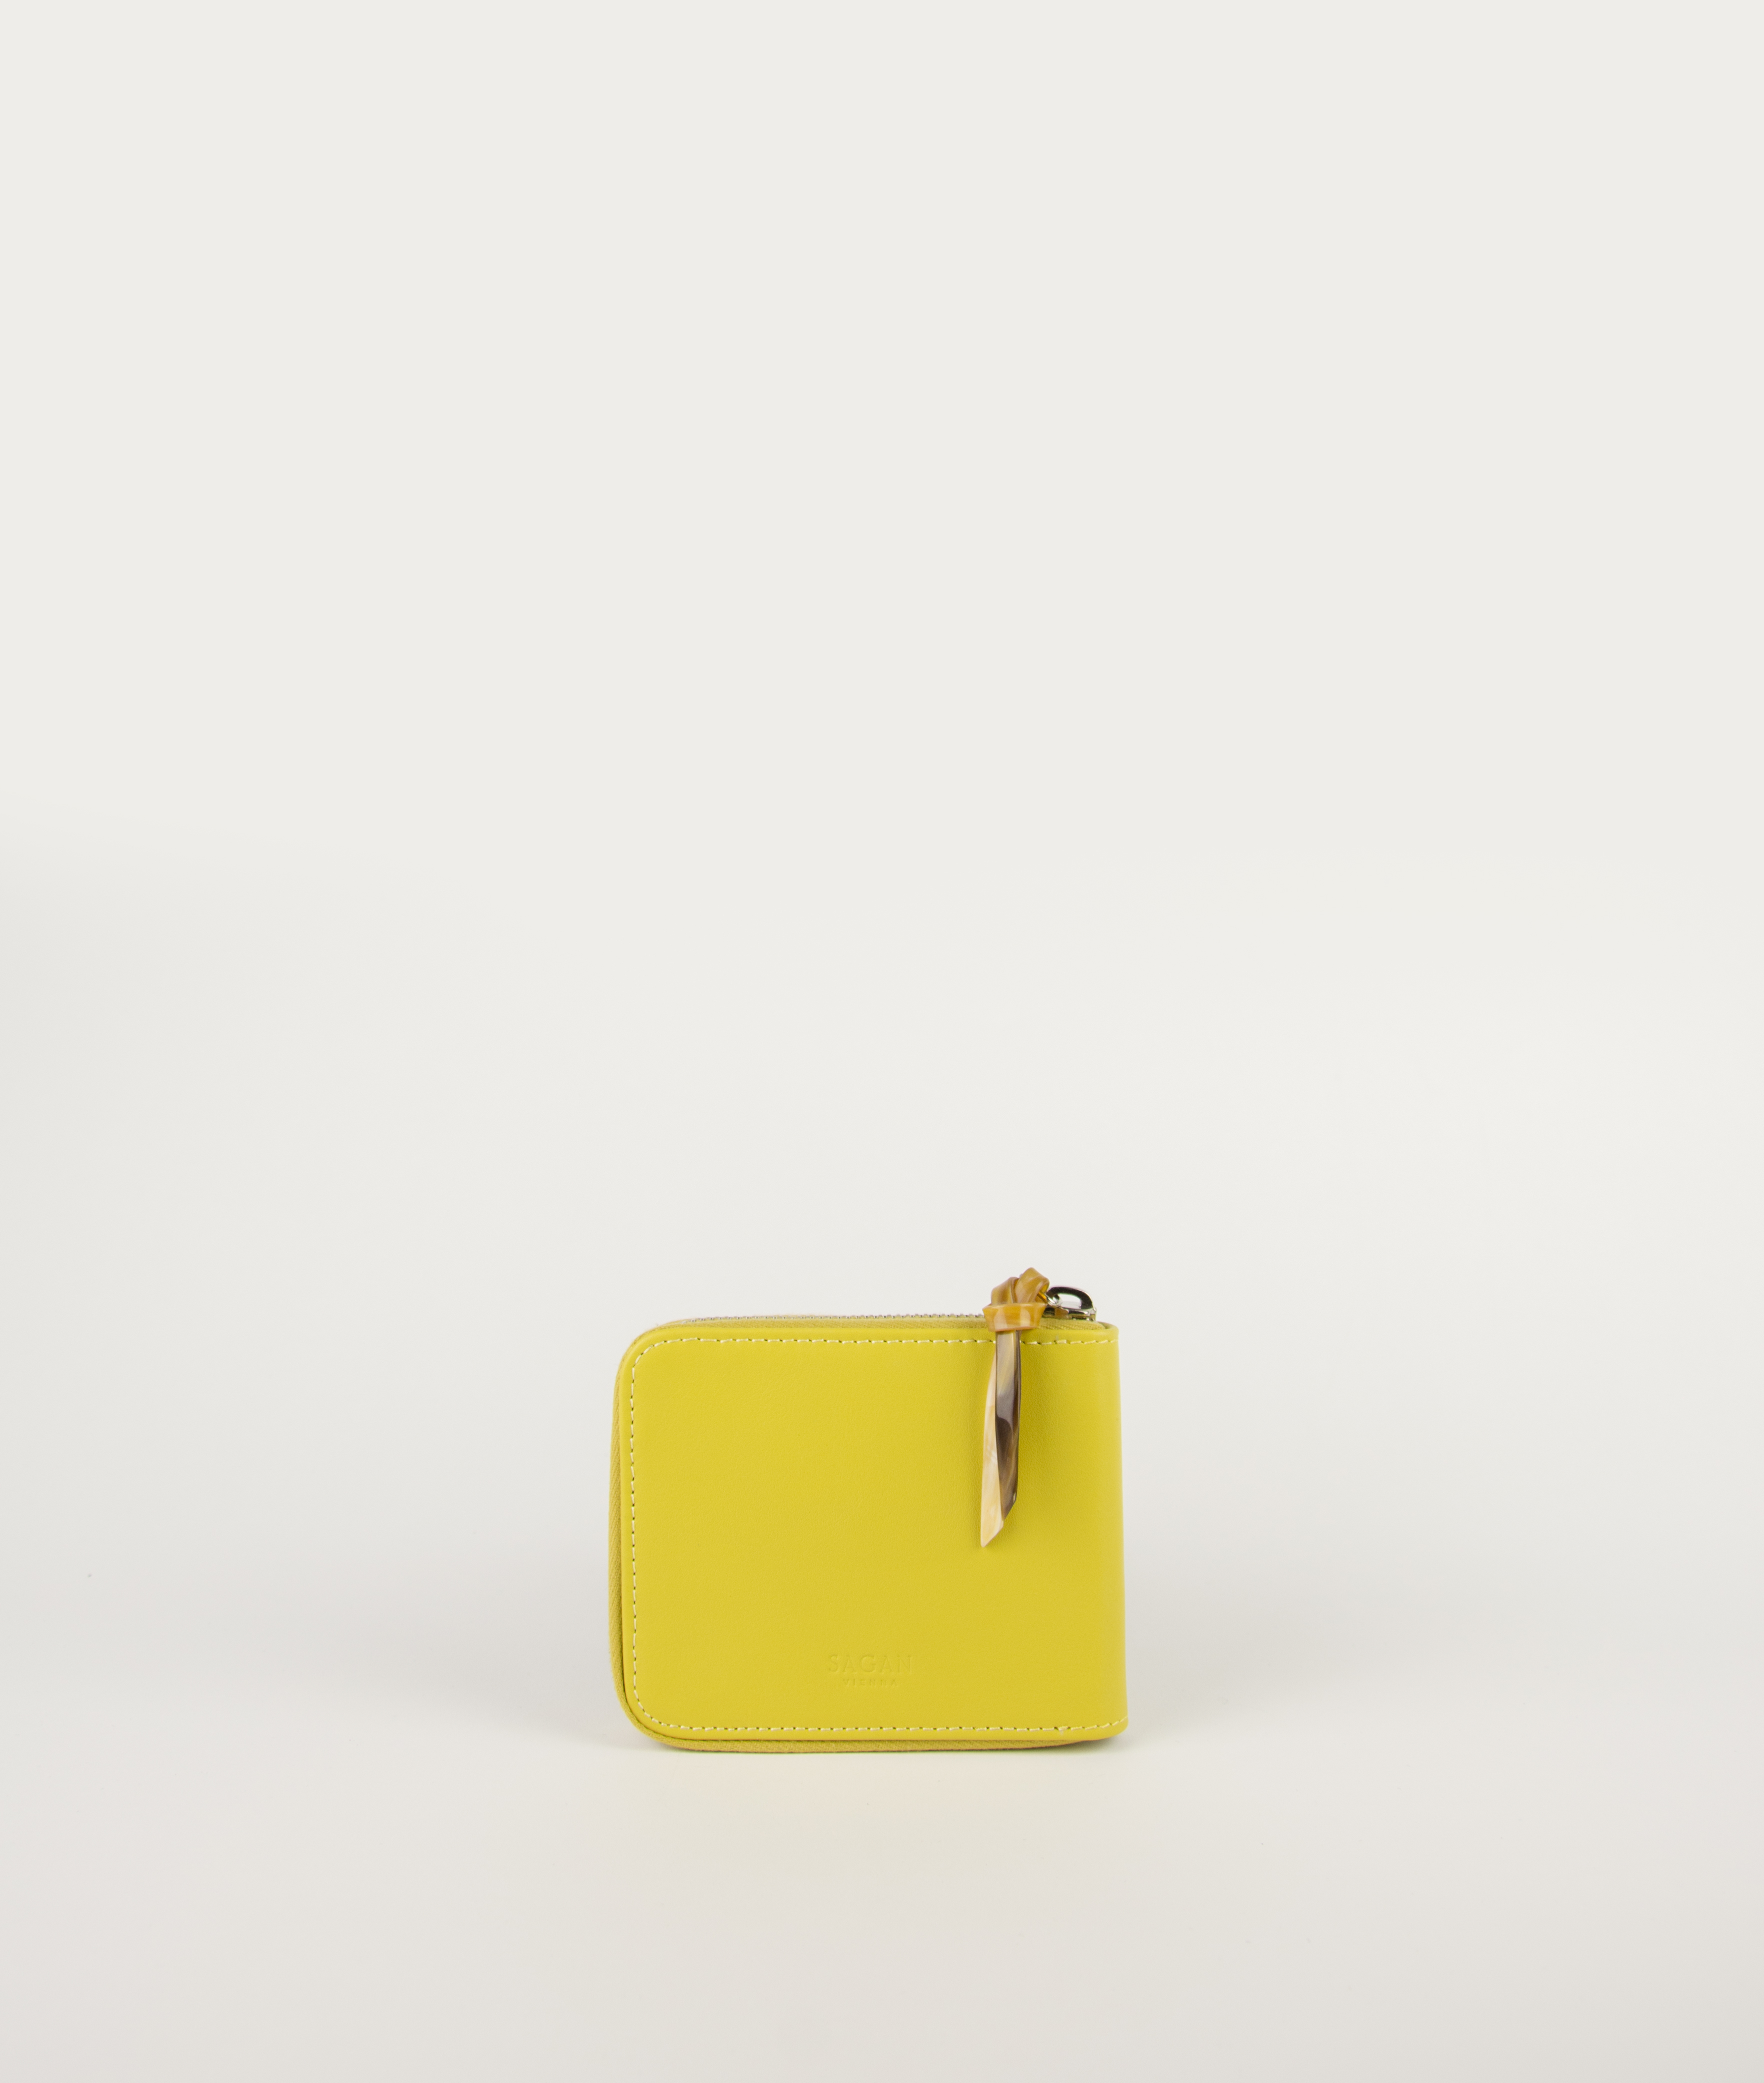 WALLET SQUARE_FRESH YELLO with HORN PULLER